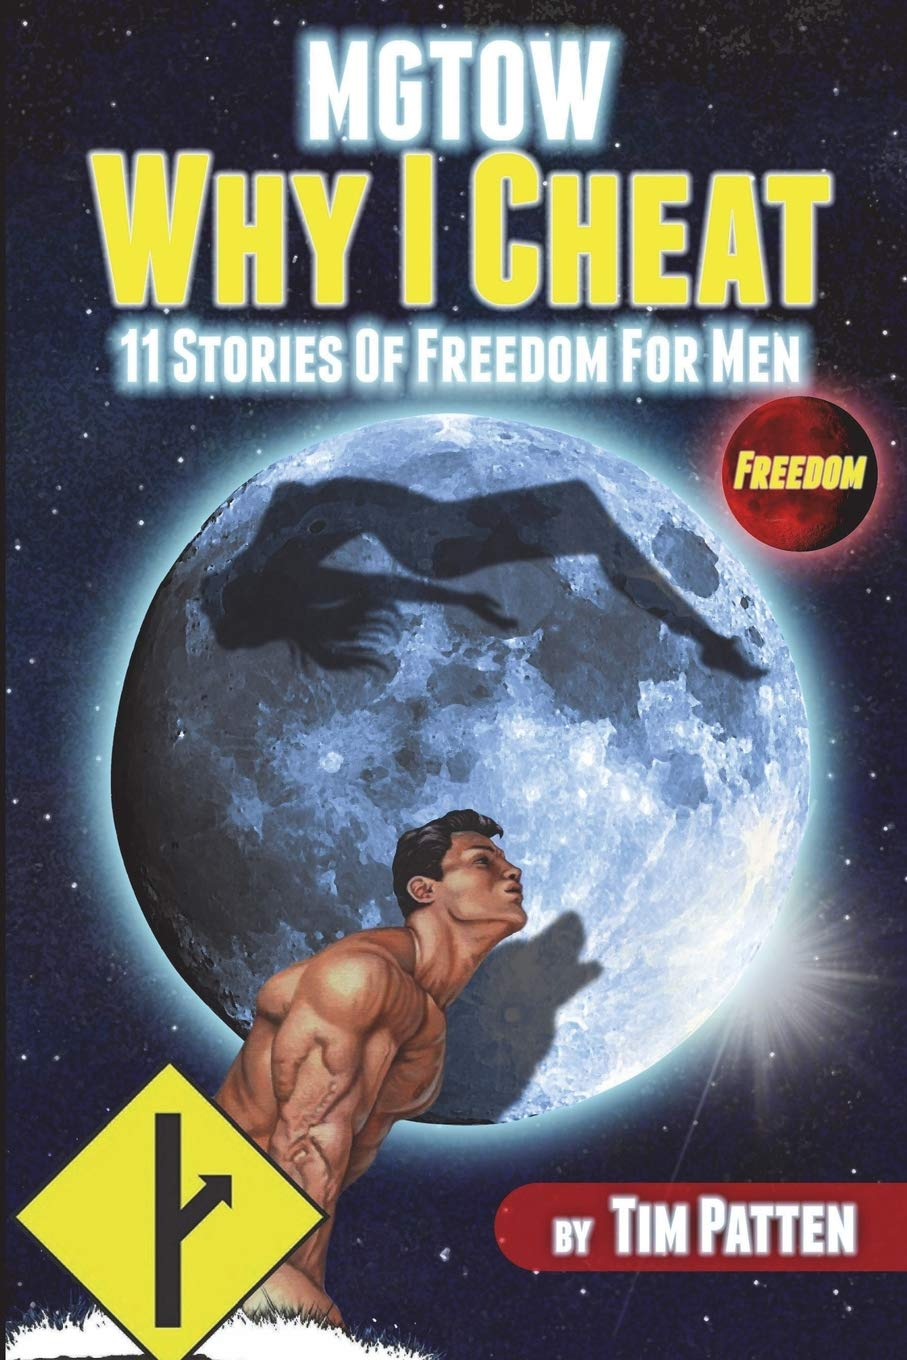 MGTOW Why I Cheat: 11 Stories Of Freedom for Men: Tim Patten